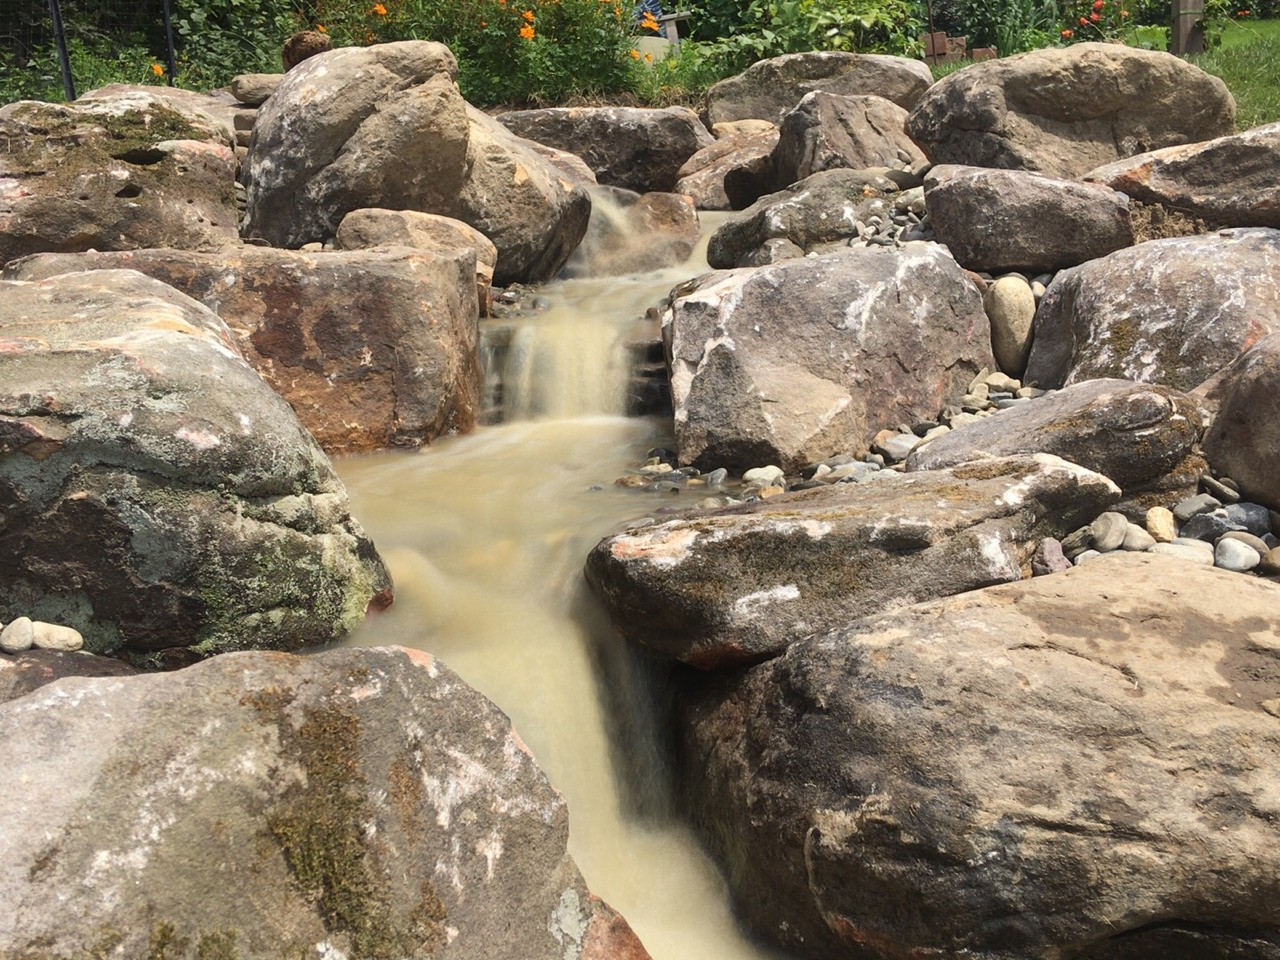 Pondless waterfall in Squirrel Hill, Pittsburgh PA